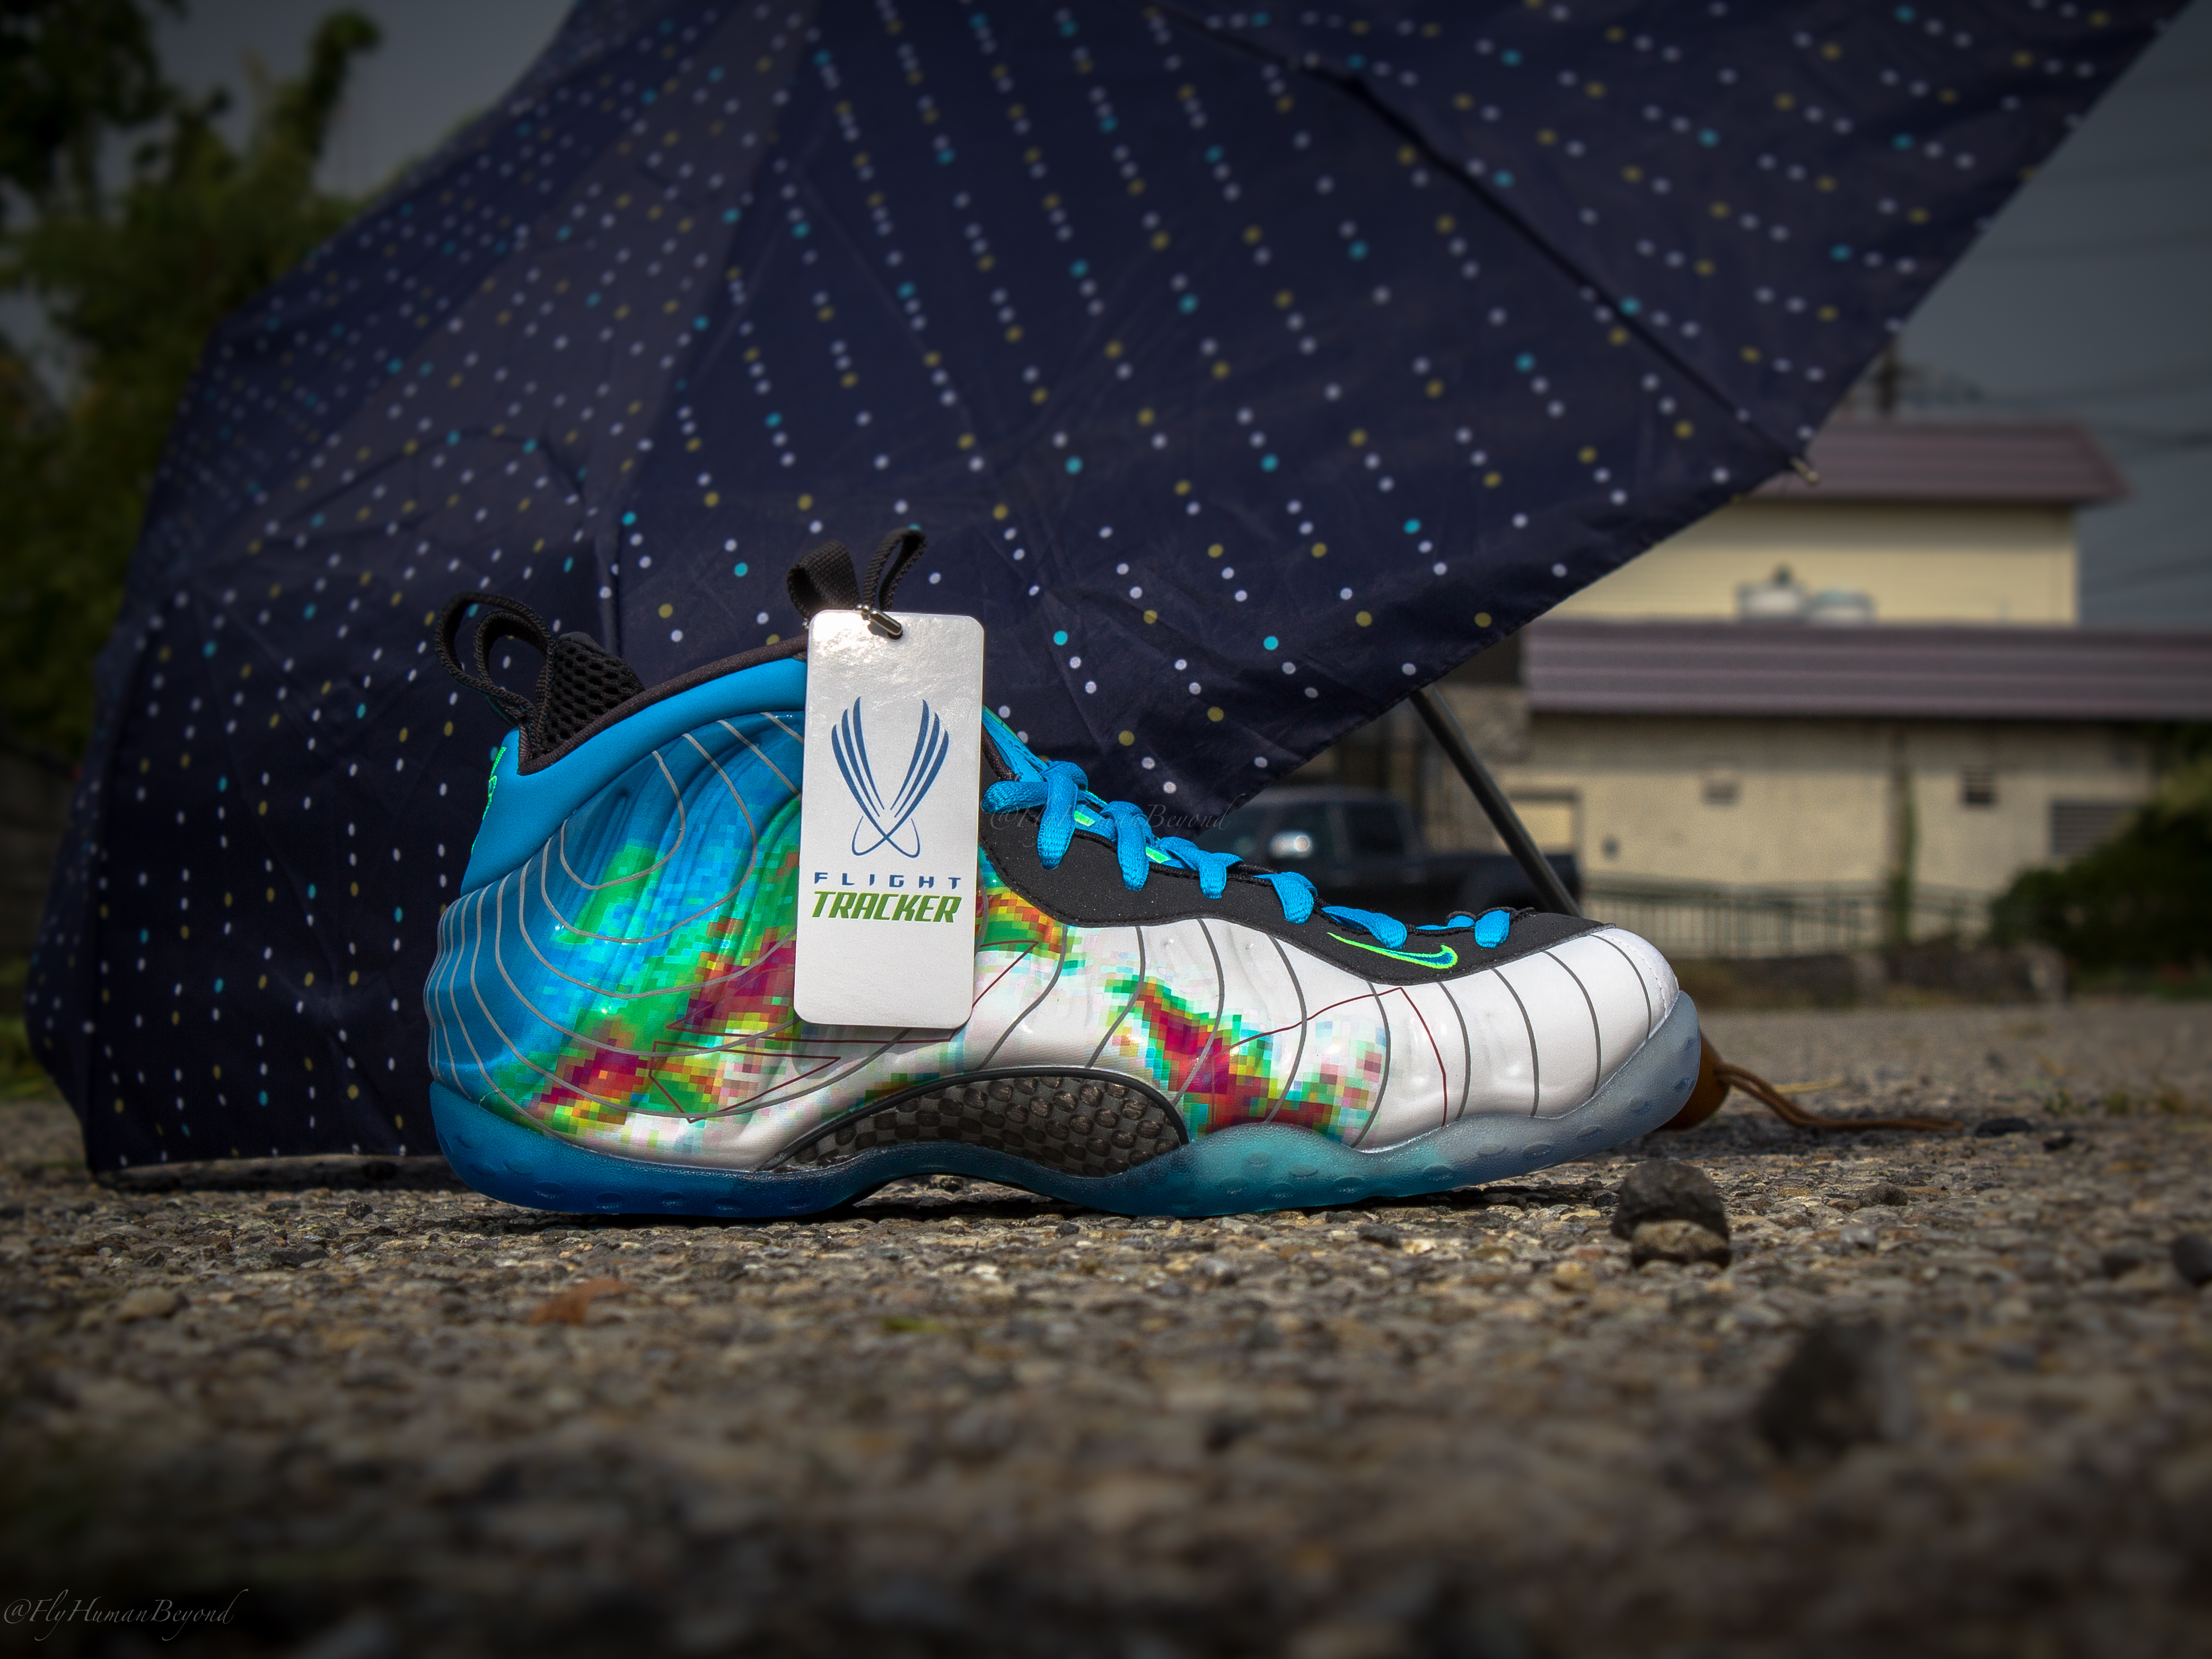 new concept 2b47e 46975 ... low price nike weatherman foamposite 3 6e9cd e692a low price nike  weatherman foamposite 3 6e9cd e692a  closeout authentic nike air foamposite  one ...